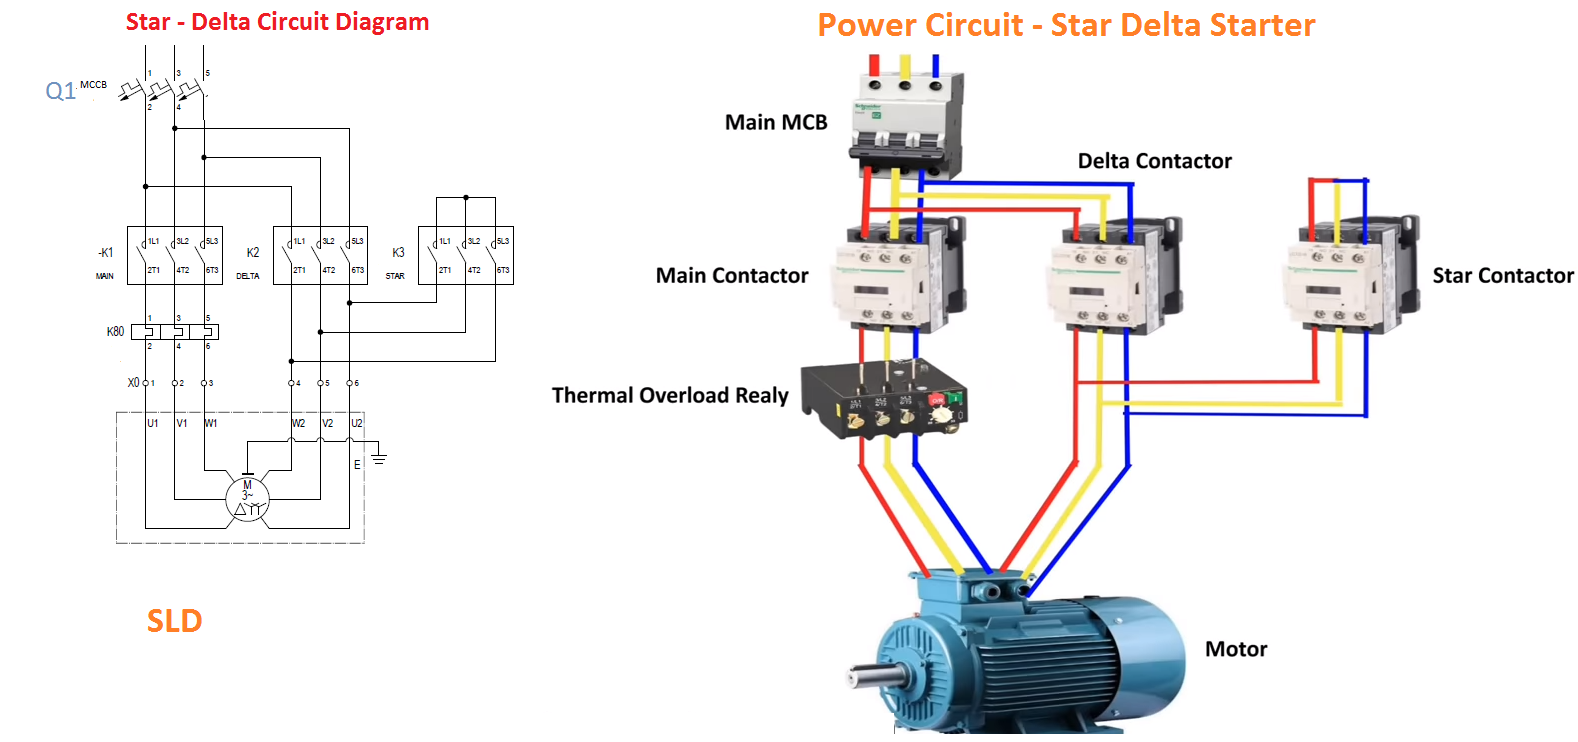 Star Delta Starter Connection Working Advantages Video Included Electrical4u